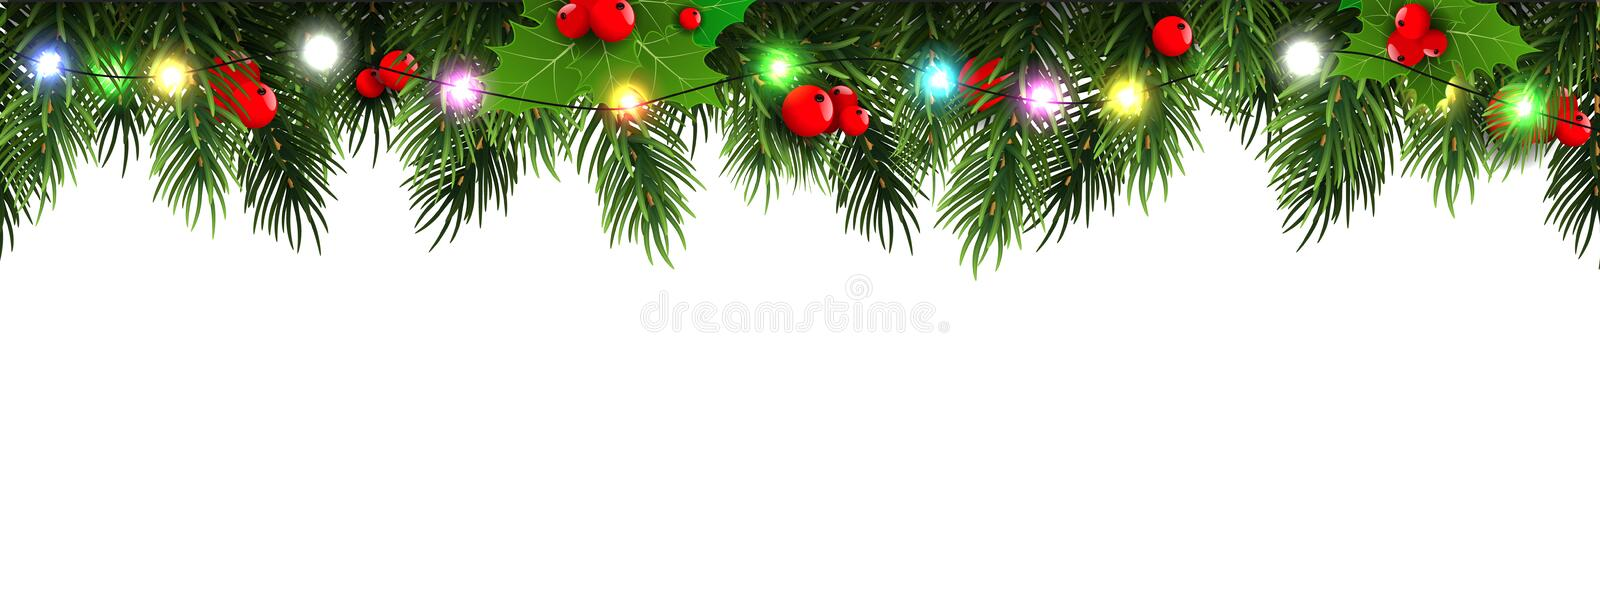 Horizontal Christmas border frame with fir branches, pine cones, berries and lights. Vector illustration. stock illustration